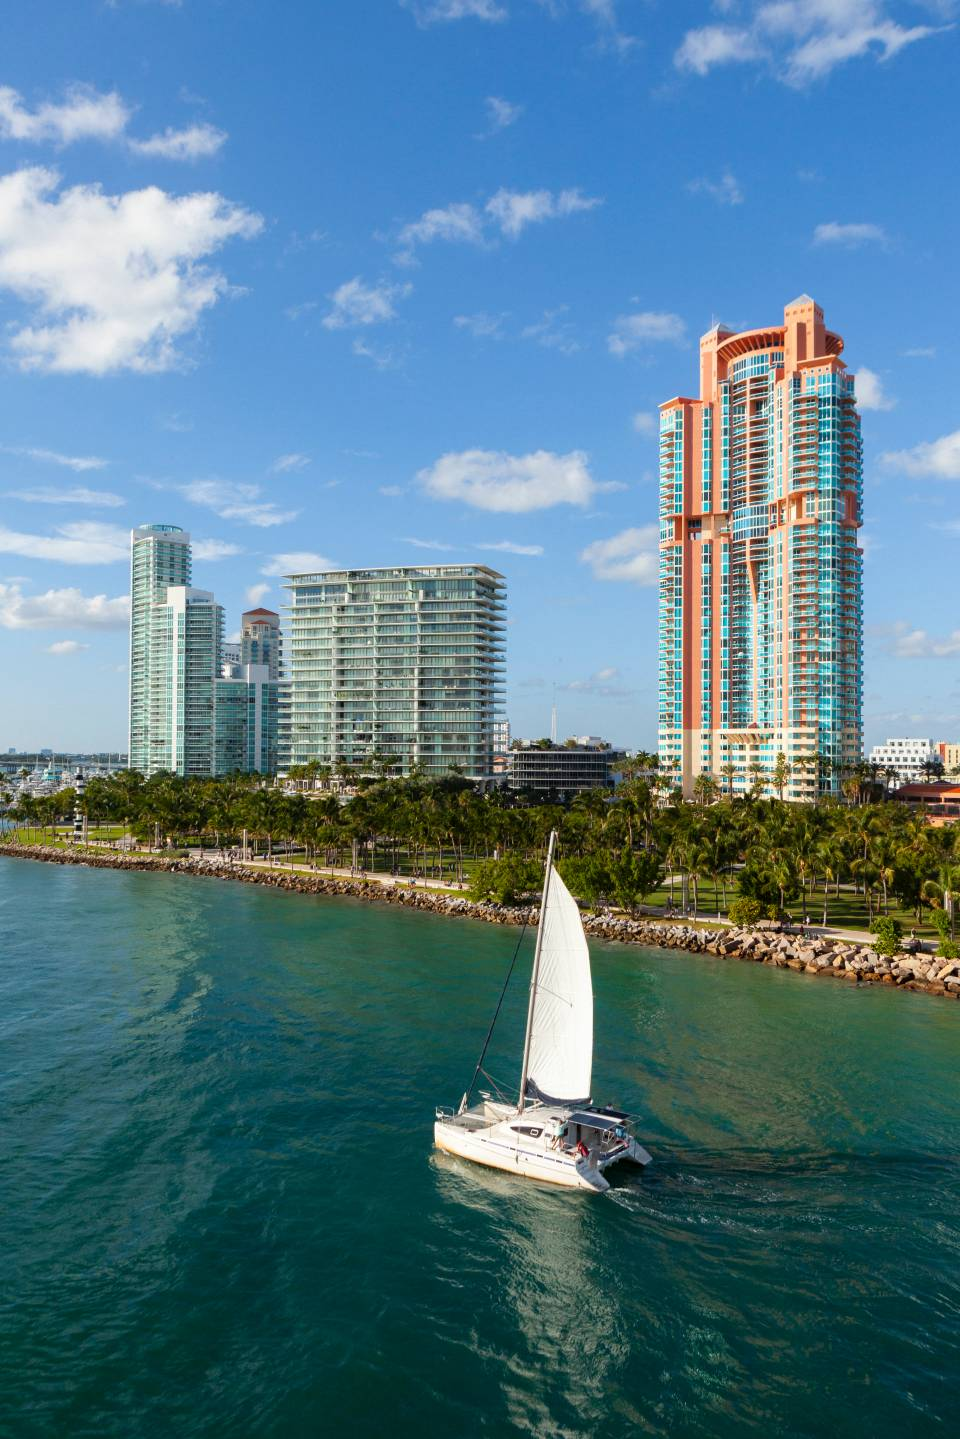 A photo of Florida Stock images 7